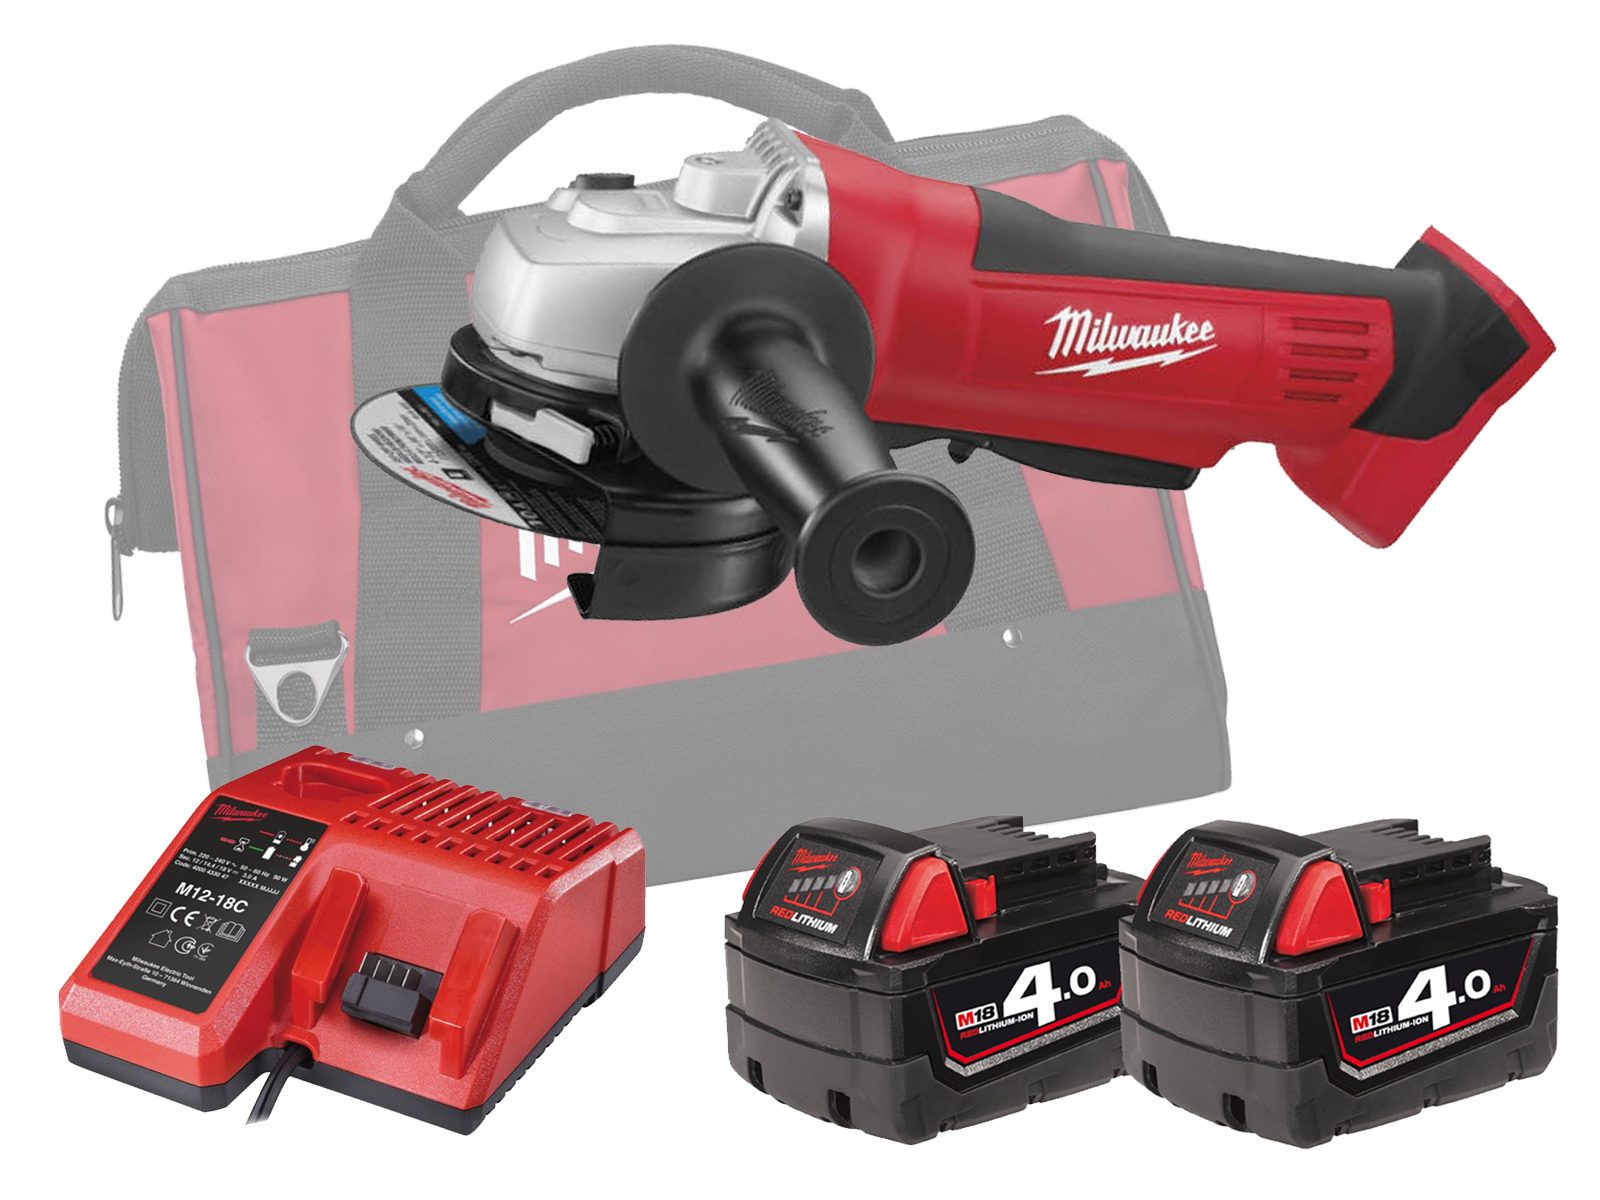 Milwaukee HD18AG-115 18V 115mm Angle Grinder with Paddle Switch - 4.0ah Pack